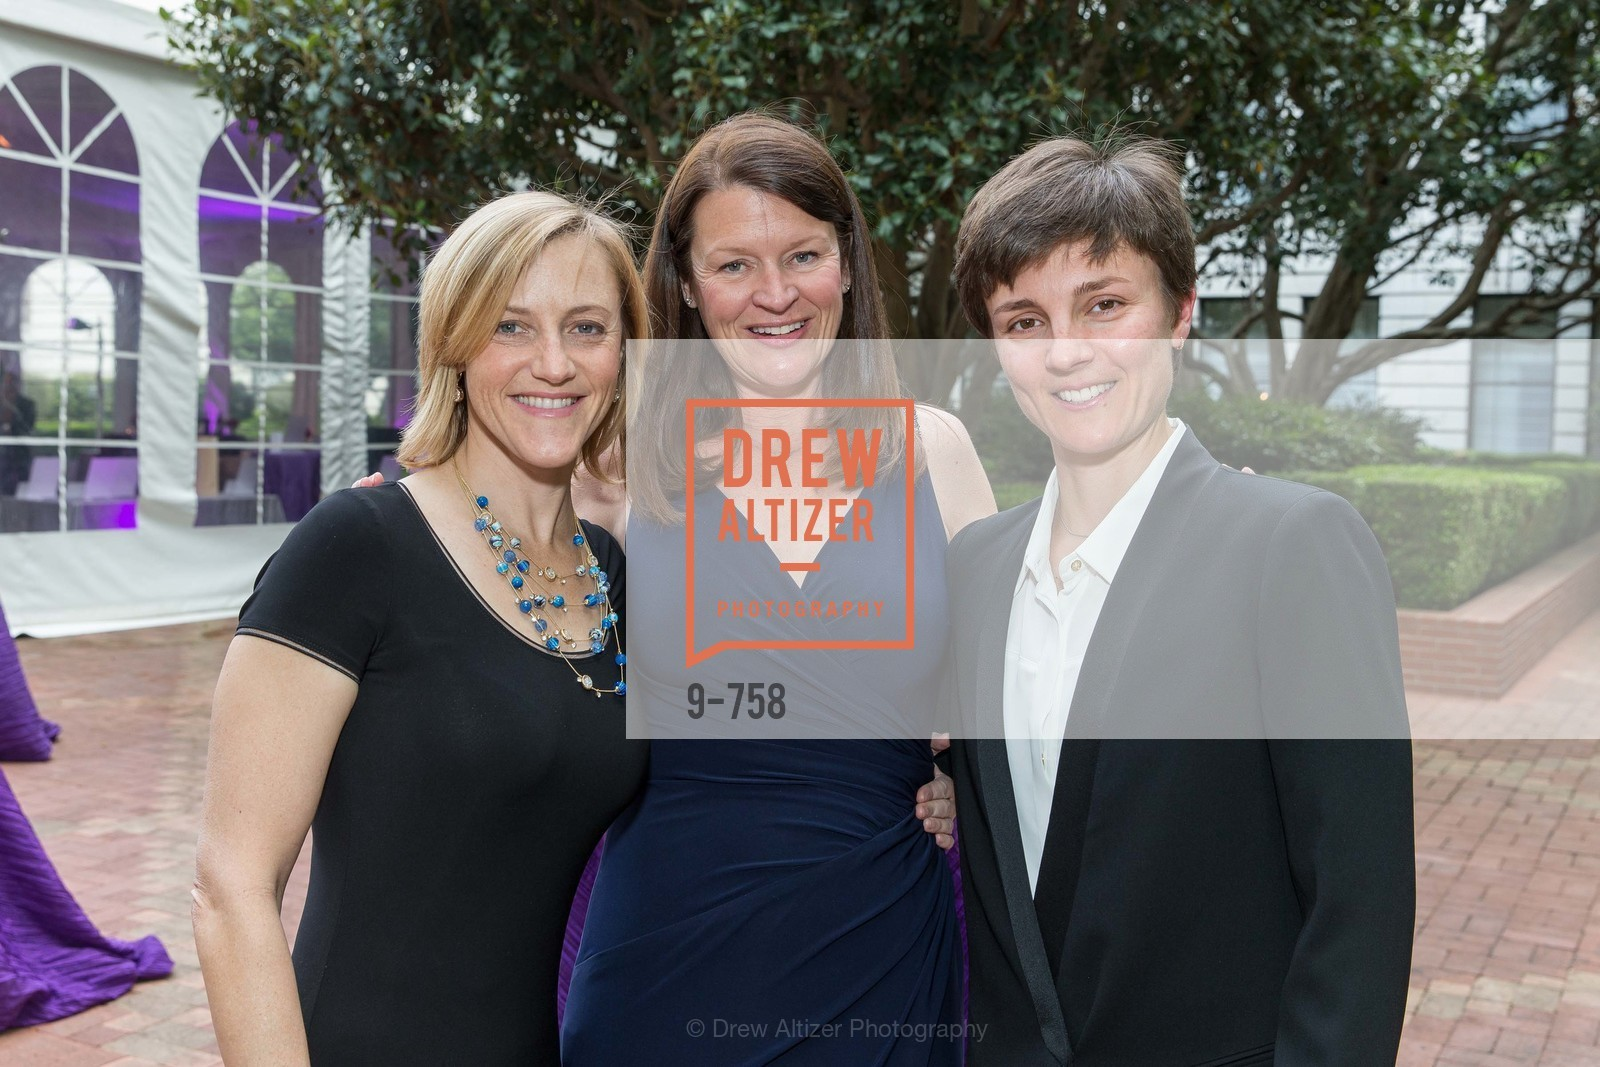 Emily Coles, Shelly Jensen, Katerina Blinova, JUVENILE DIABETES RESEARCH FOUNDATION  Hope Gala, US, May 30th, 2015,Drew Altizer, Drew Altizer Photography, full-service agency, private events, San Francisco photographer, photographer california